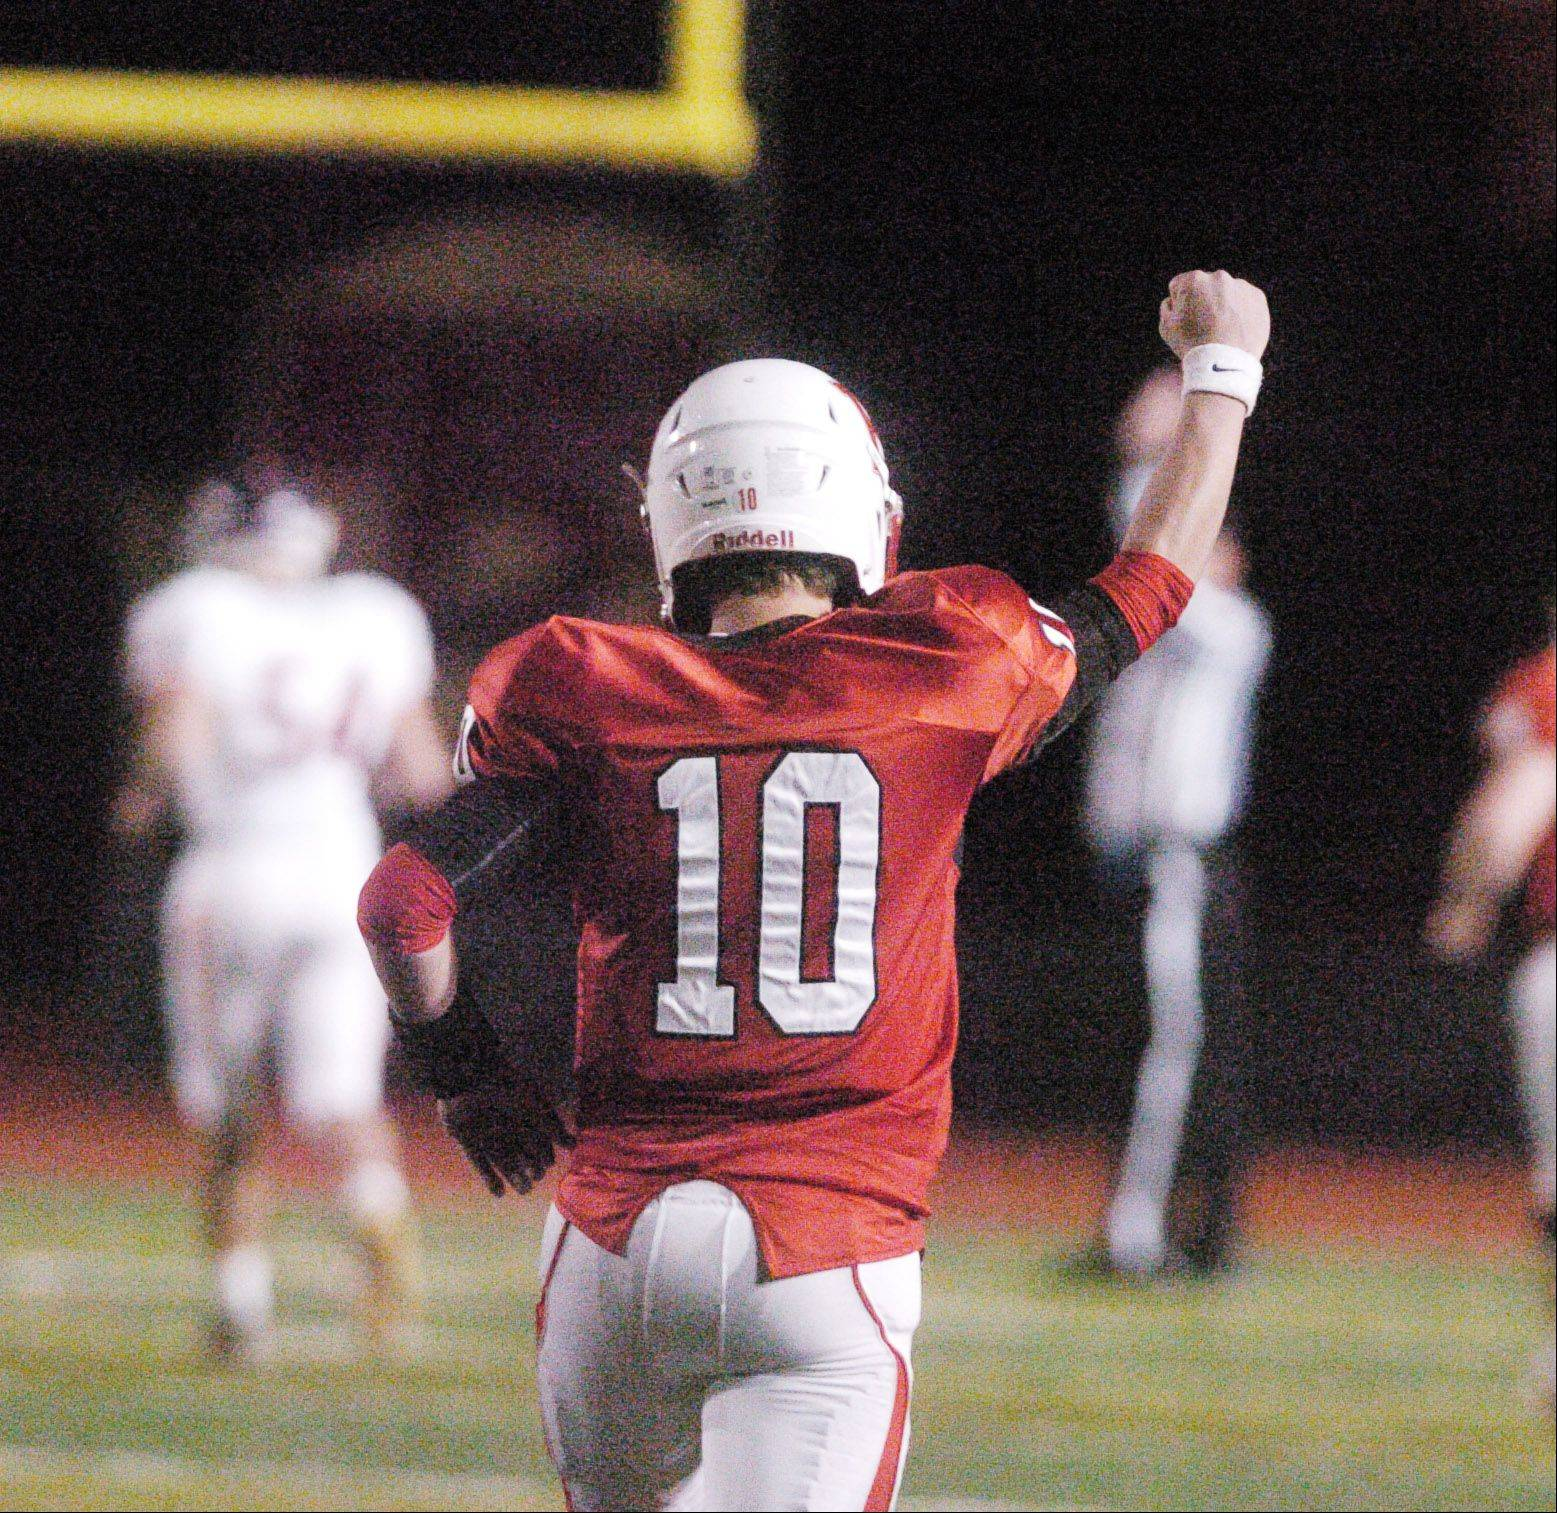 JT Crosby of Benet celebrates a touchdown.